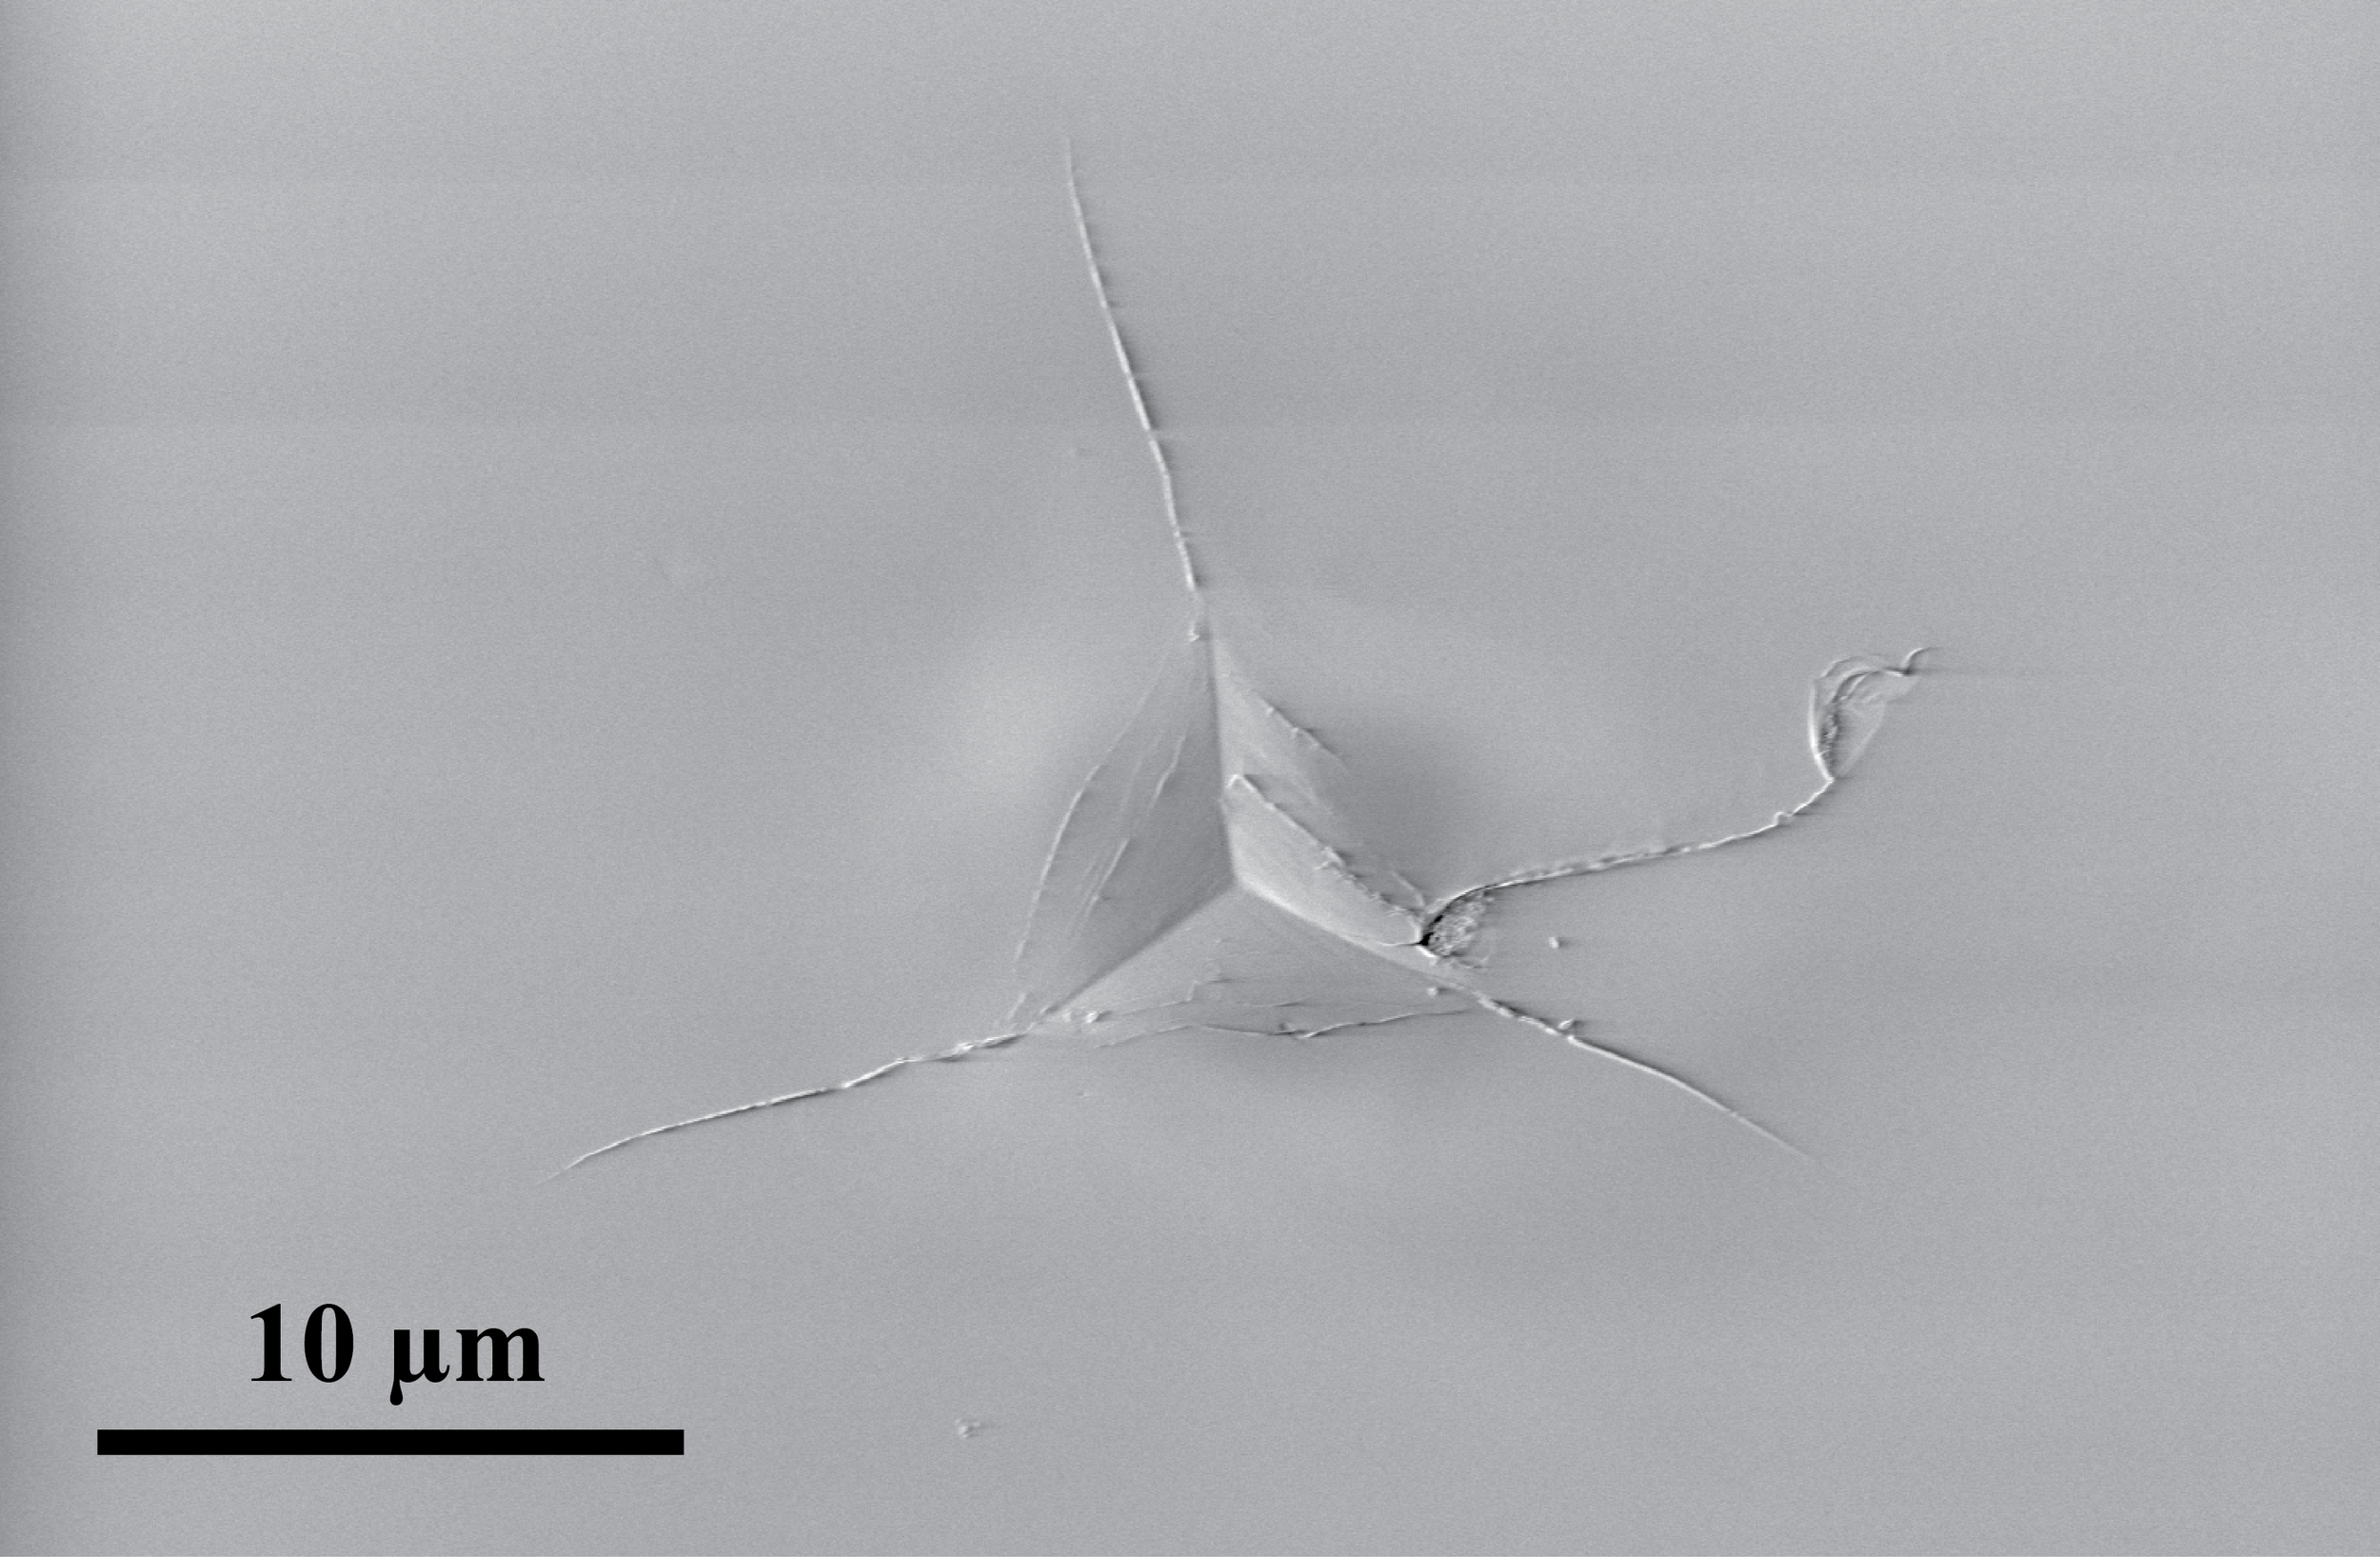 An example of a Berkovich (3-sided pyramid) indent in olivine. This secondary electron image was taken using a scanning electron microscope.